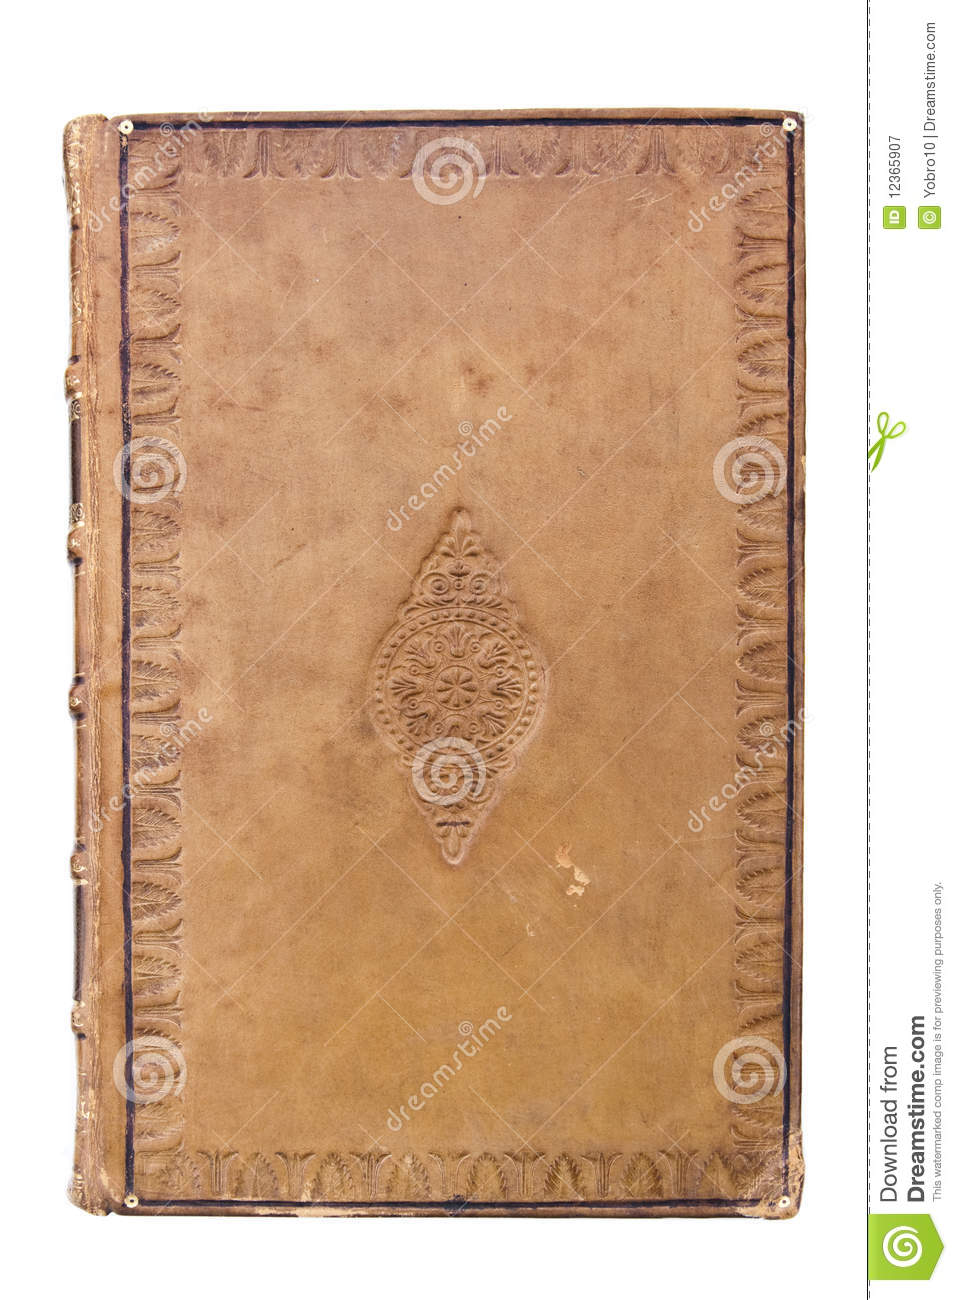 Old Leather Book Cover Background ~ Antique leather book cover royalty free stock photography